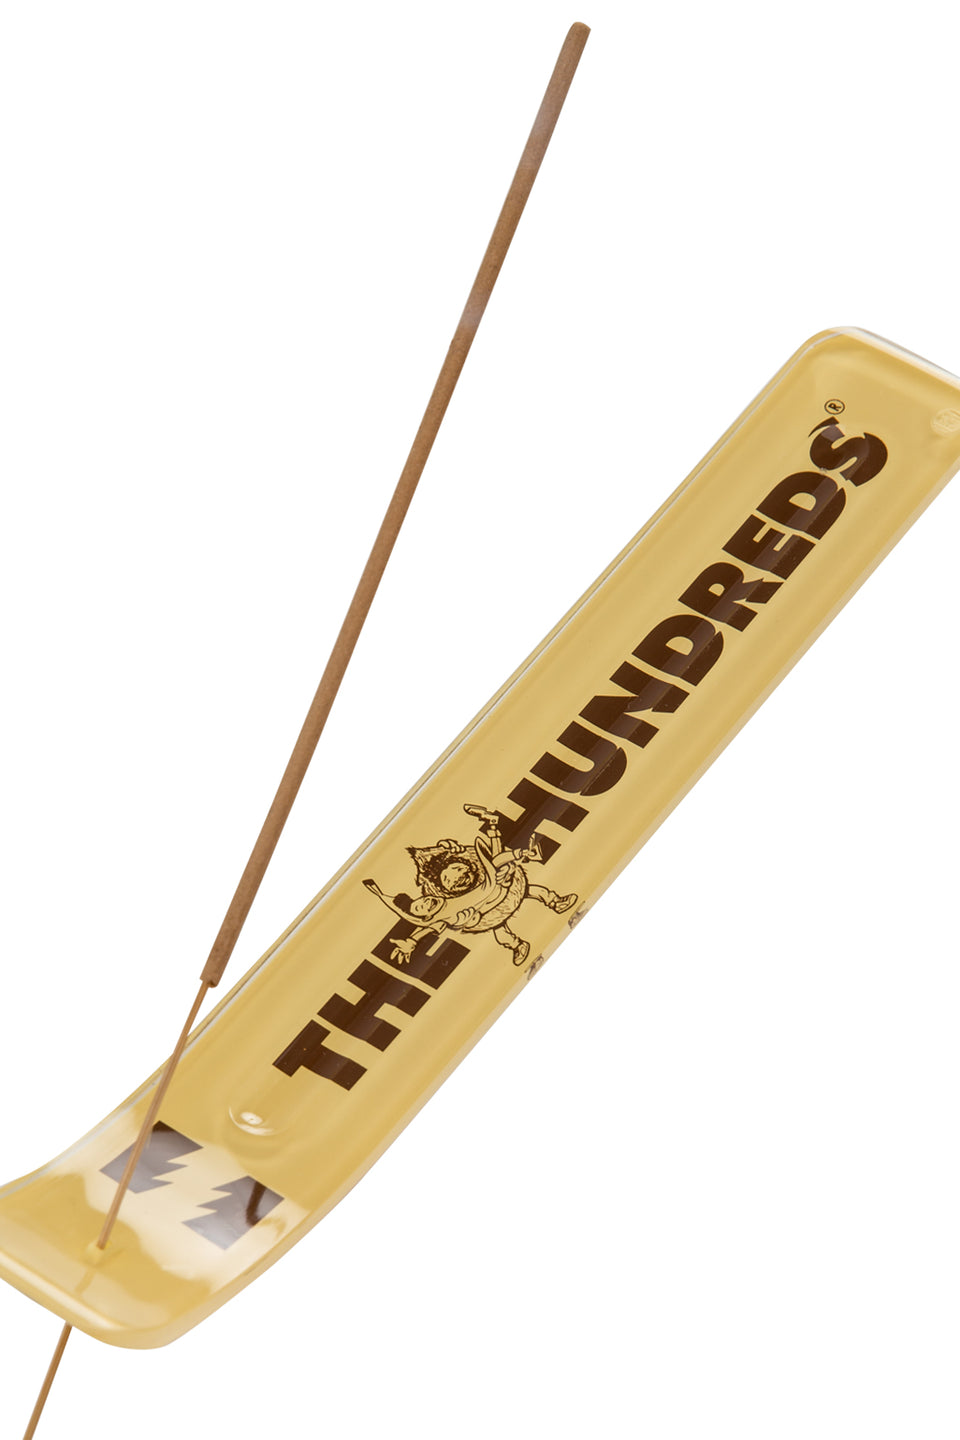 The Hundreds X Kuumba Incense Holder